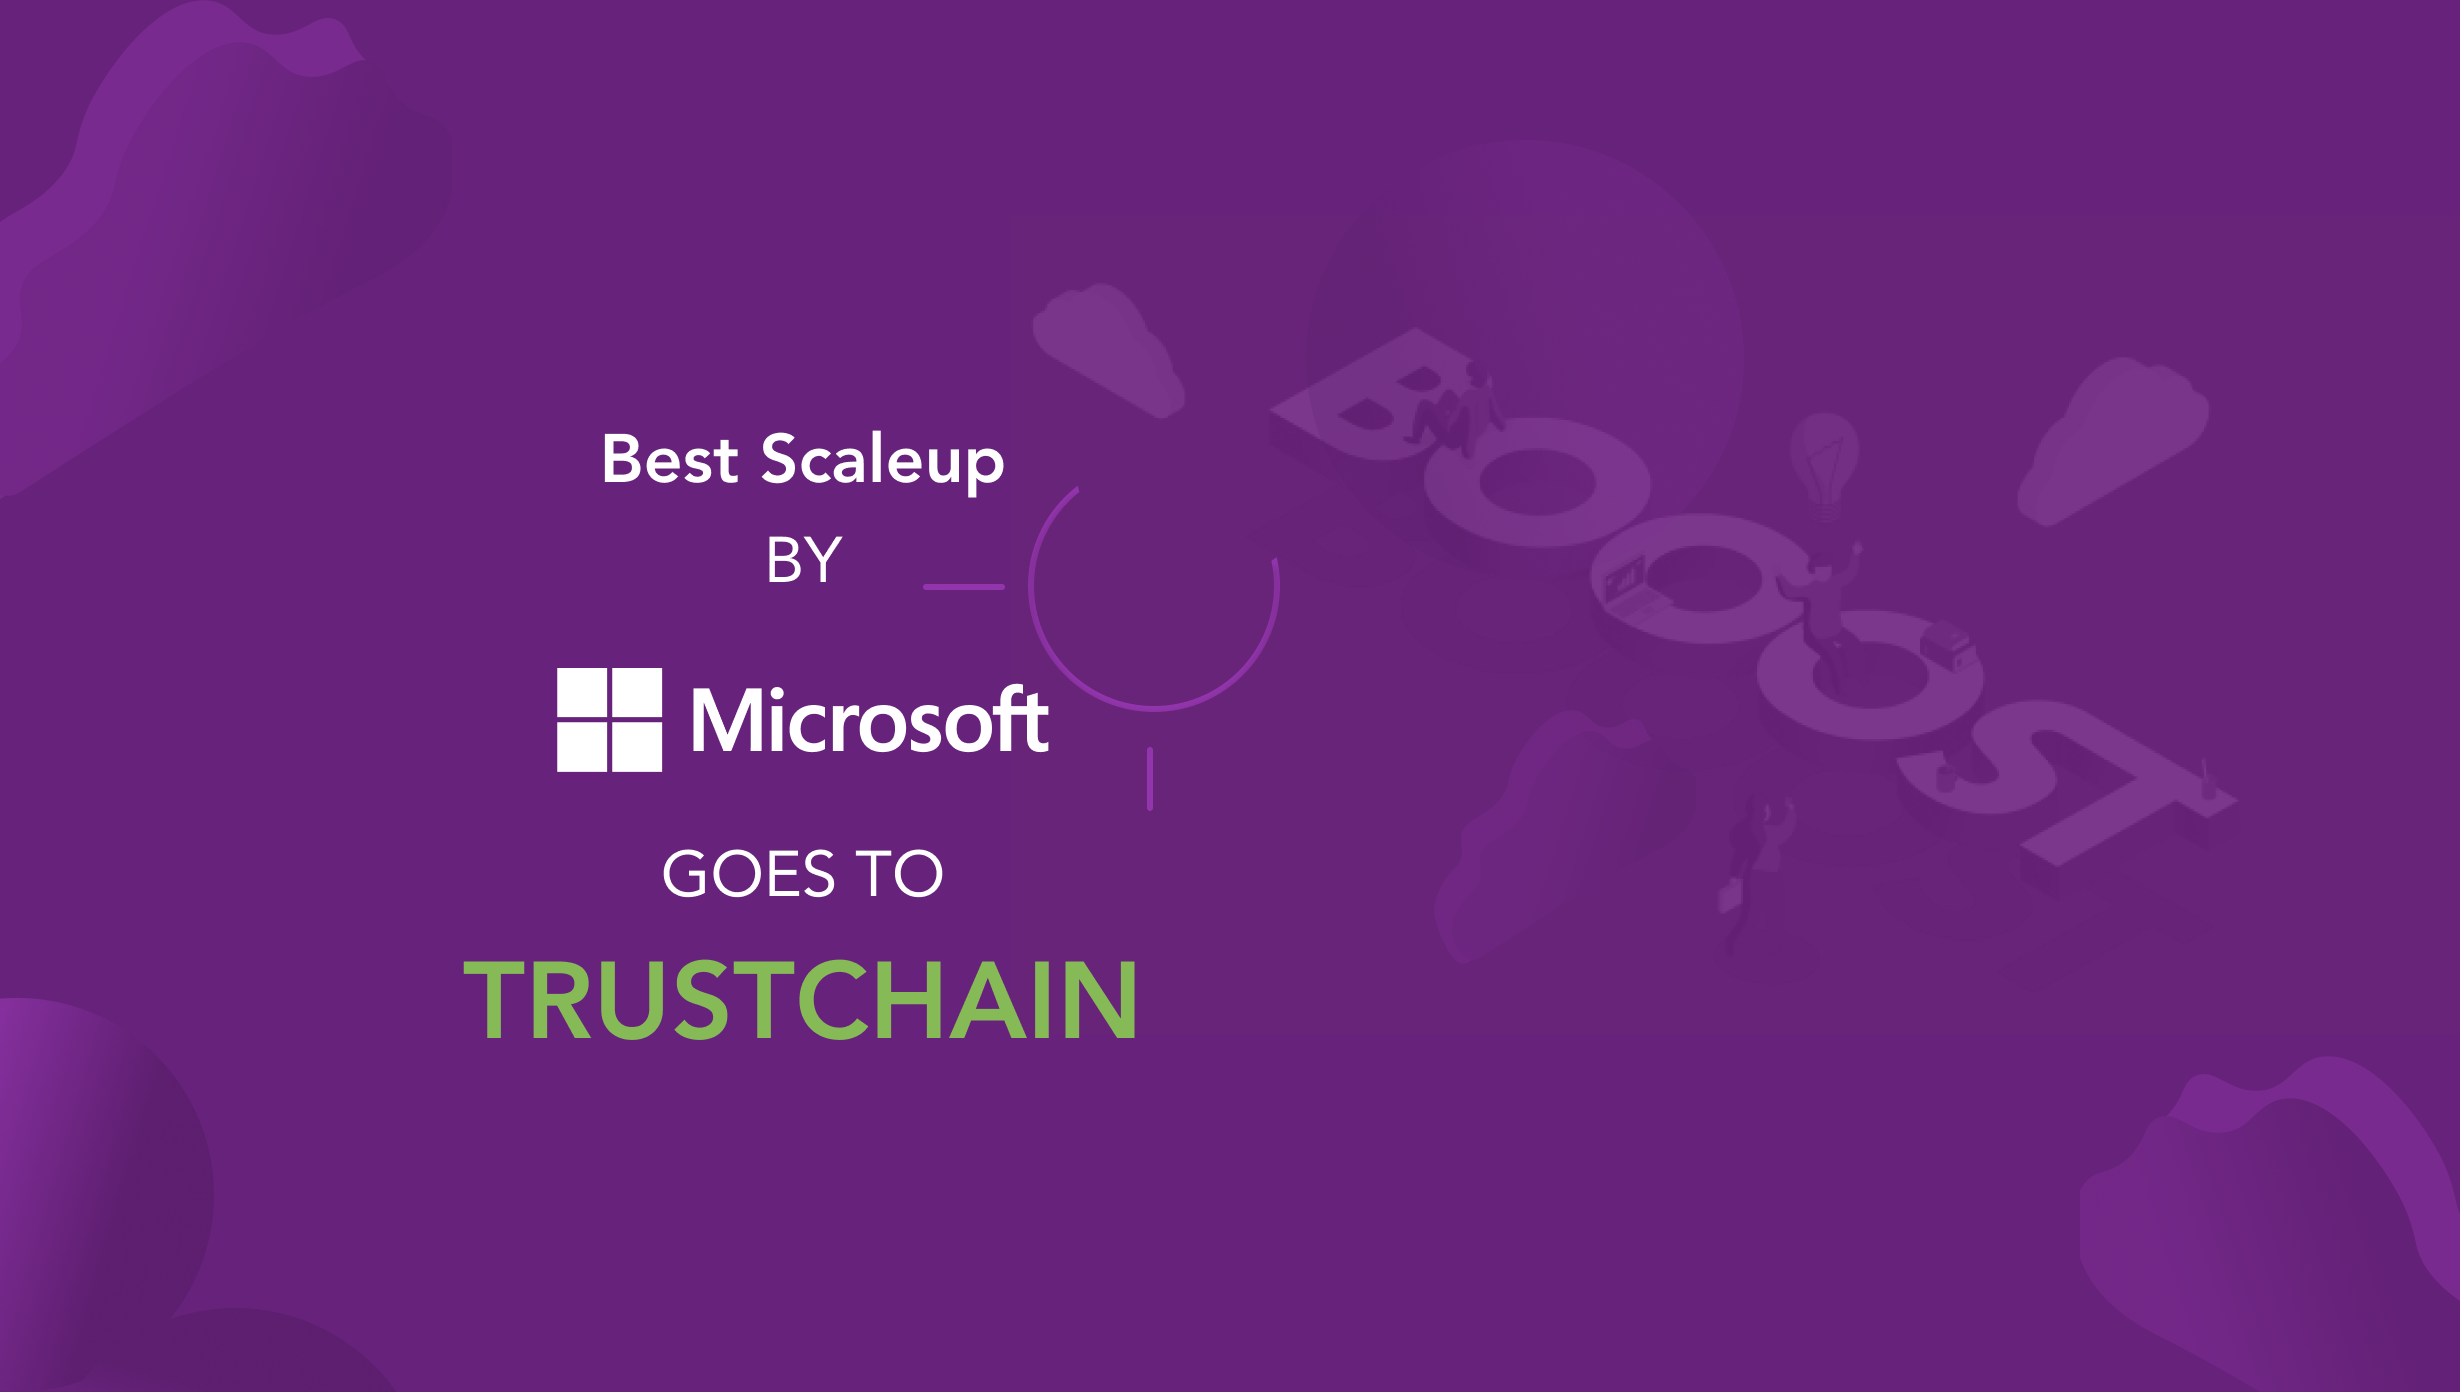 TrustChain won another award, this time from Microsoft